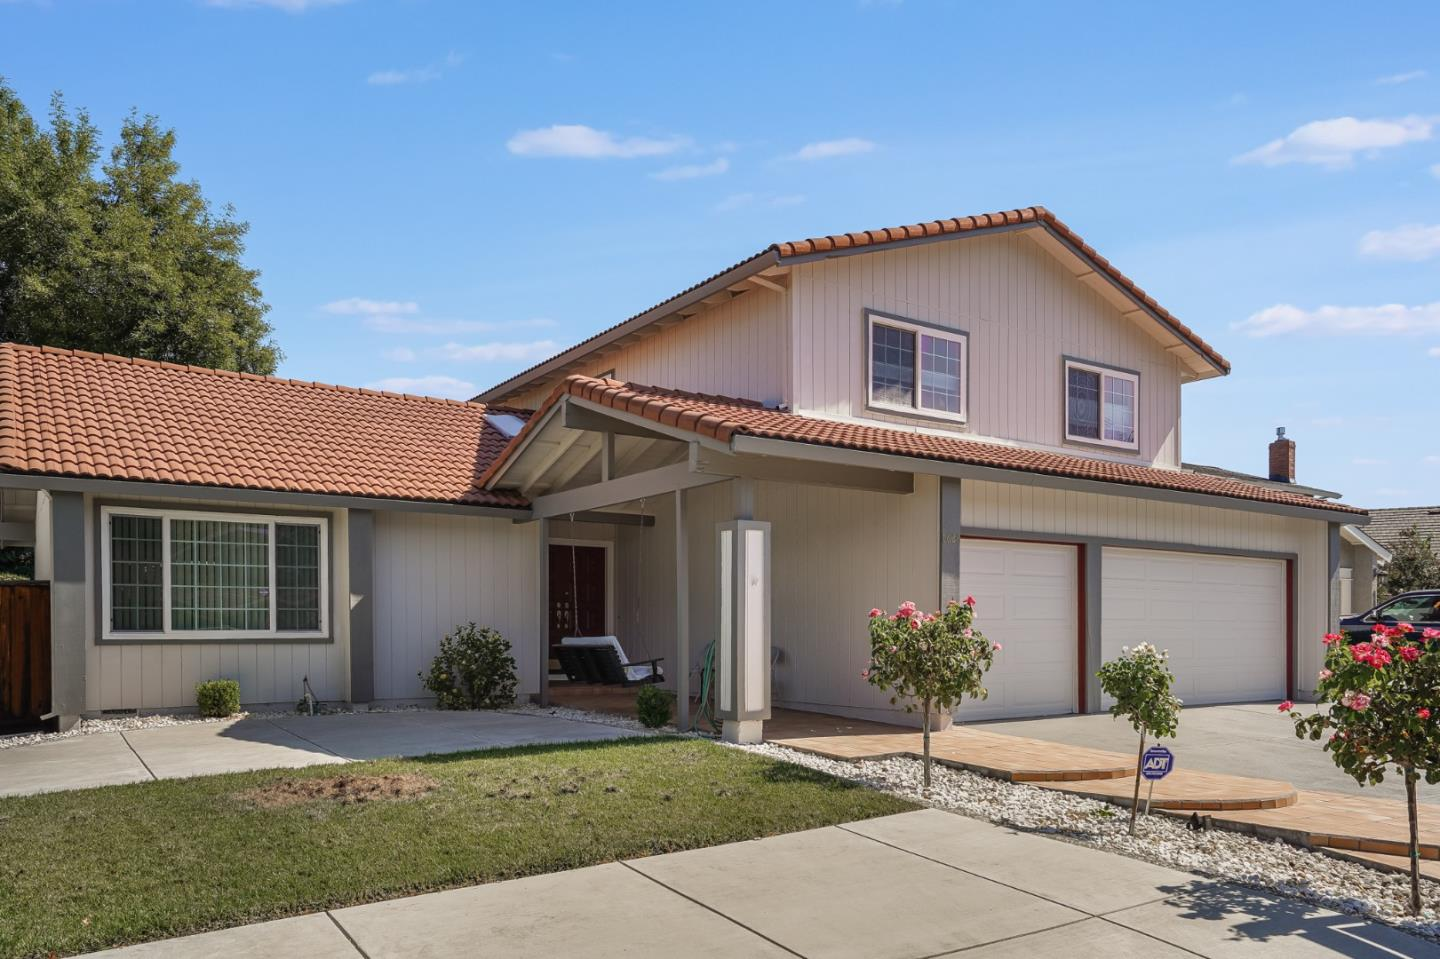 Detail Gallery Image 1 of 66 For 6628 Barnsdale Ct, San Jose,  CA 95120 - 5 Beds   3/1 Baths